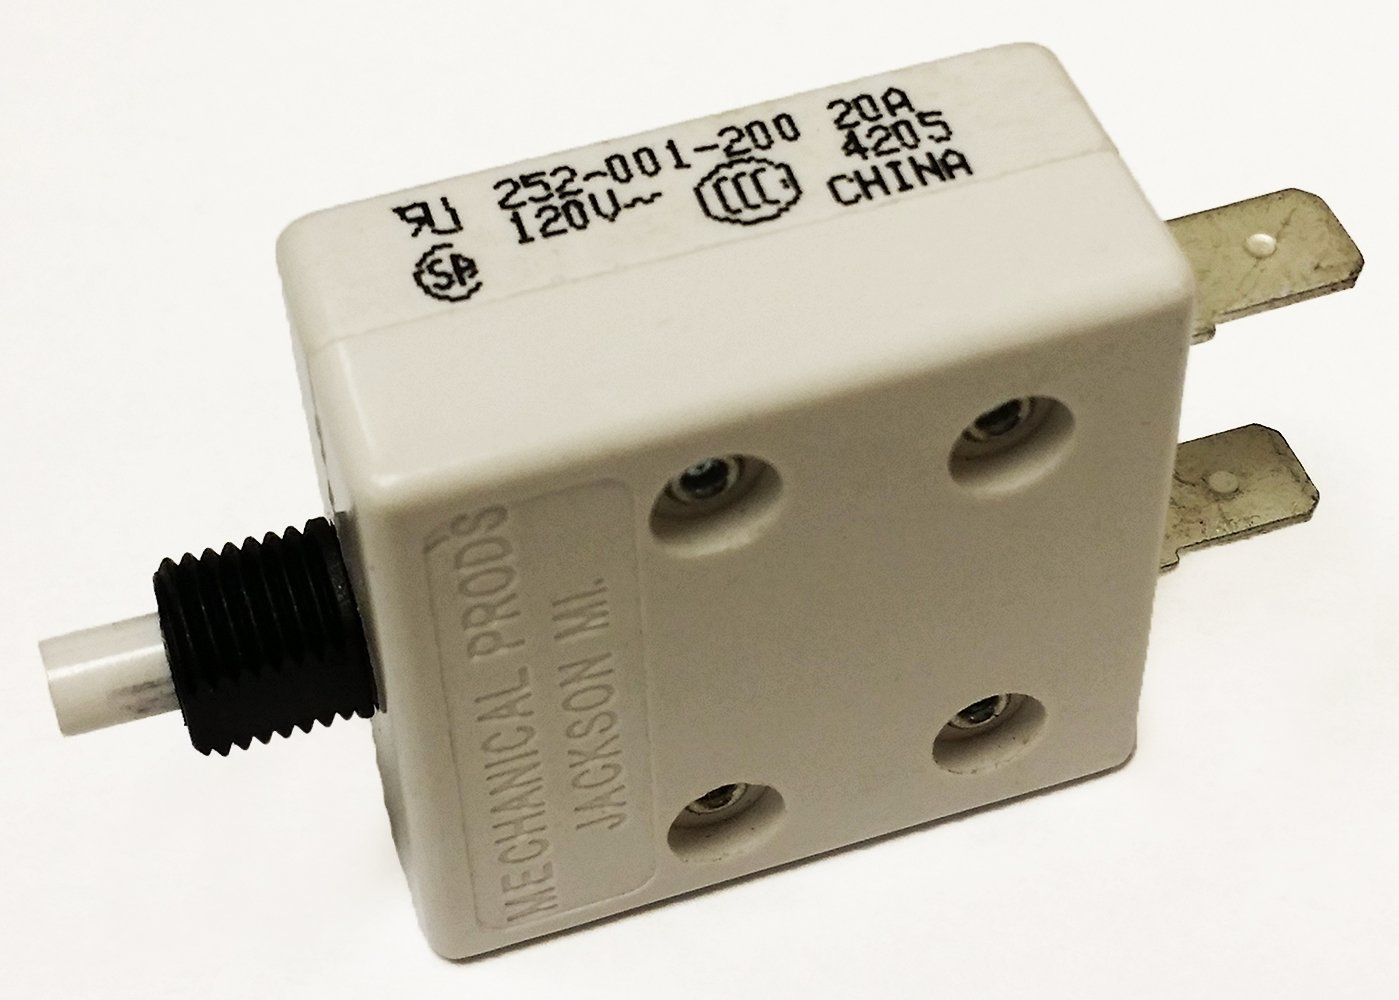 Connecticut Electric RT-20 EmerGen Switch Power Inlet Box for 20-Amp Generator